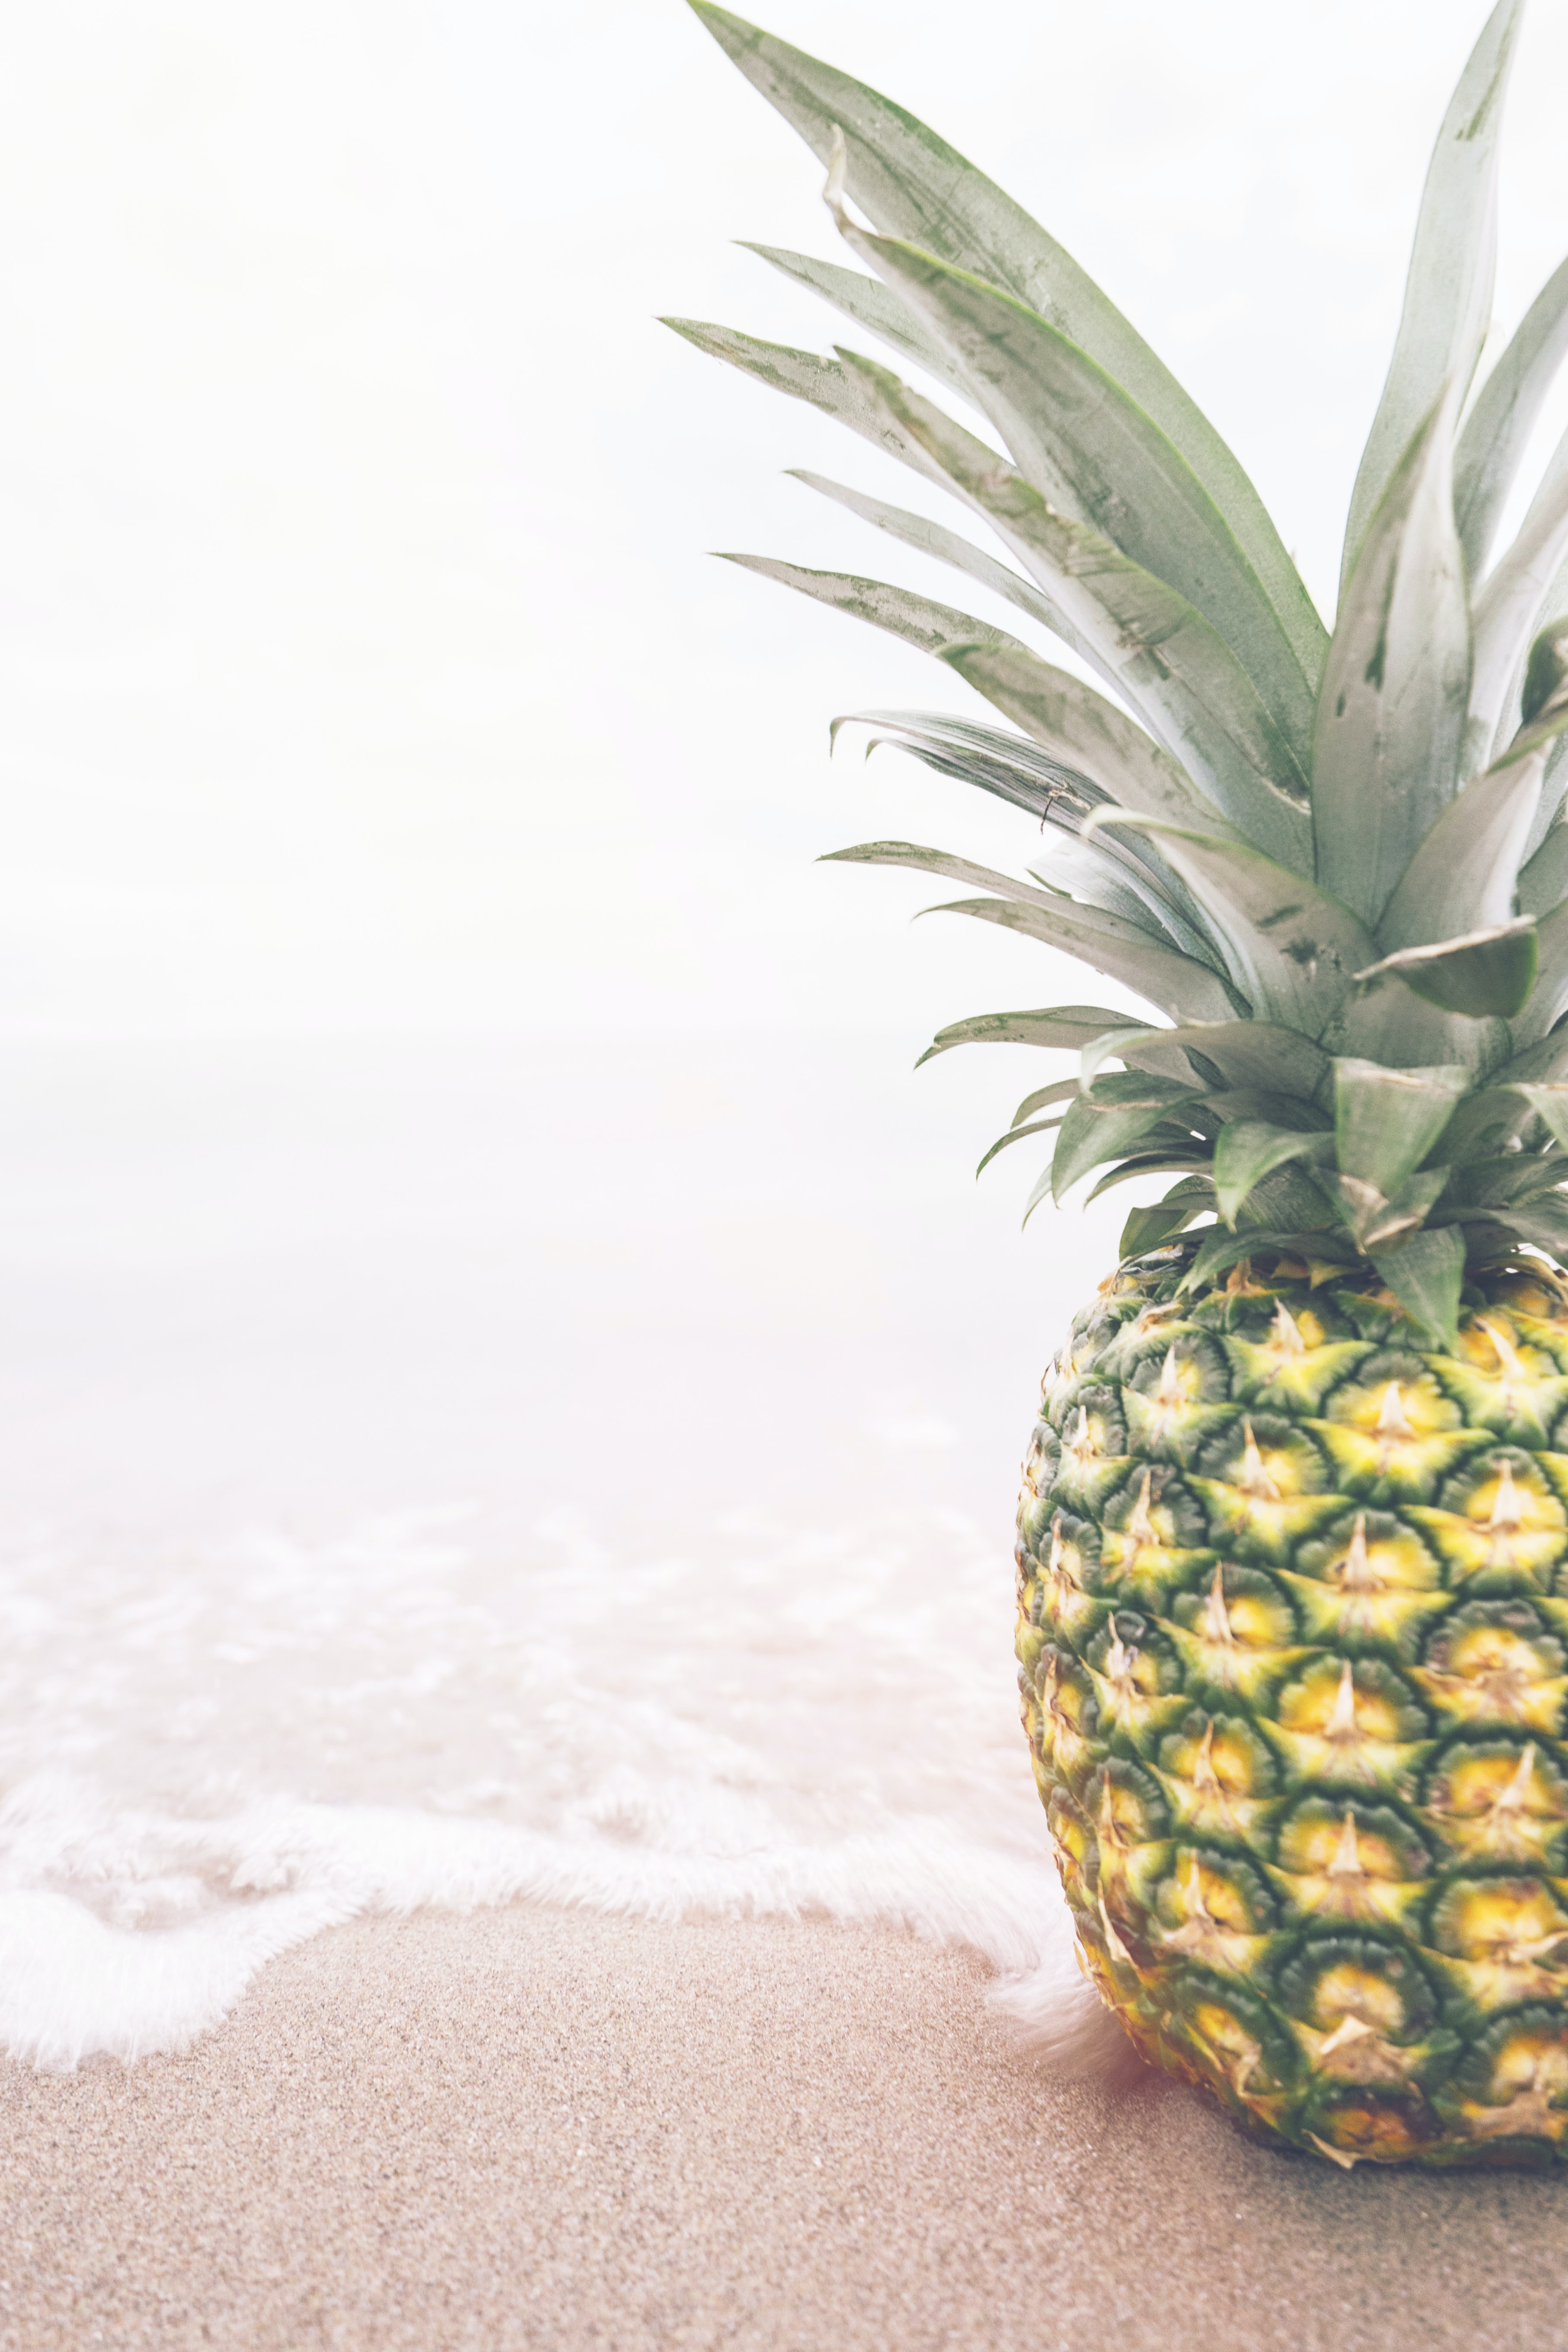 Single fresh pineapple sitting on the ocean shoreline